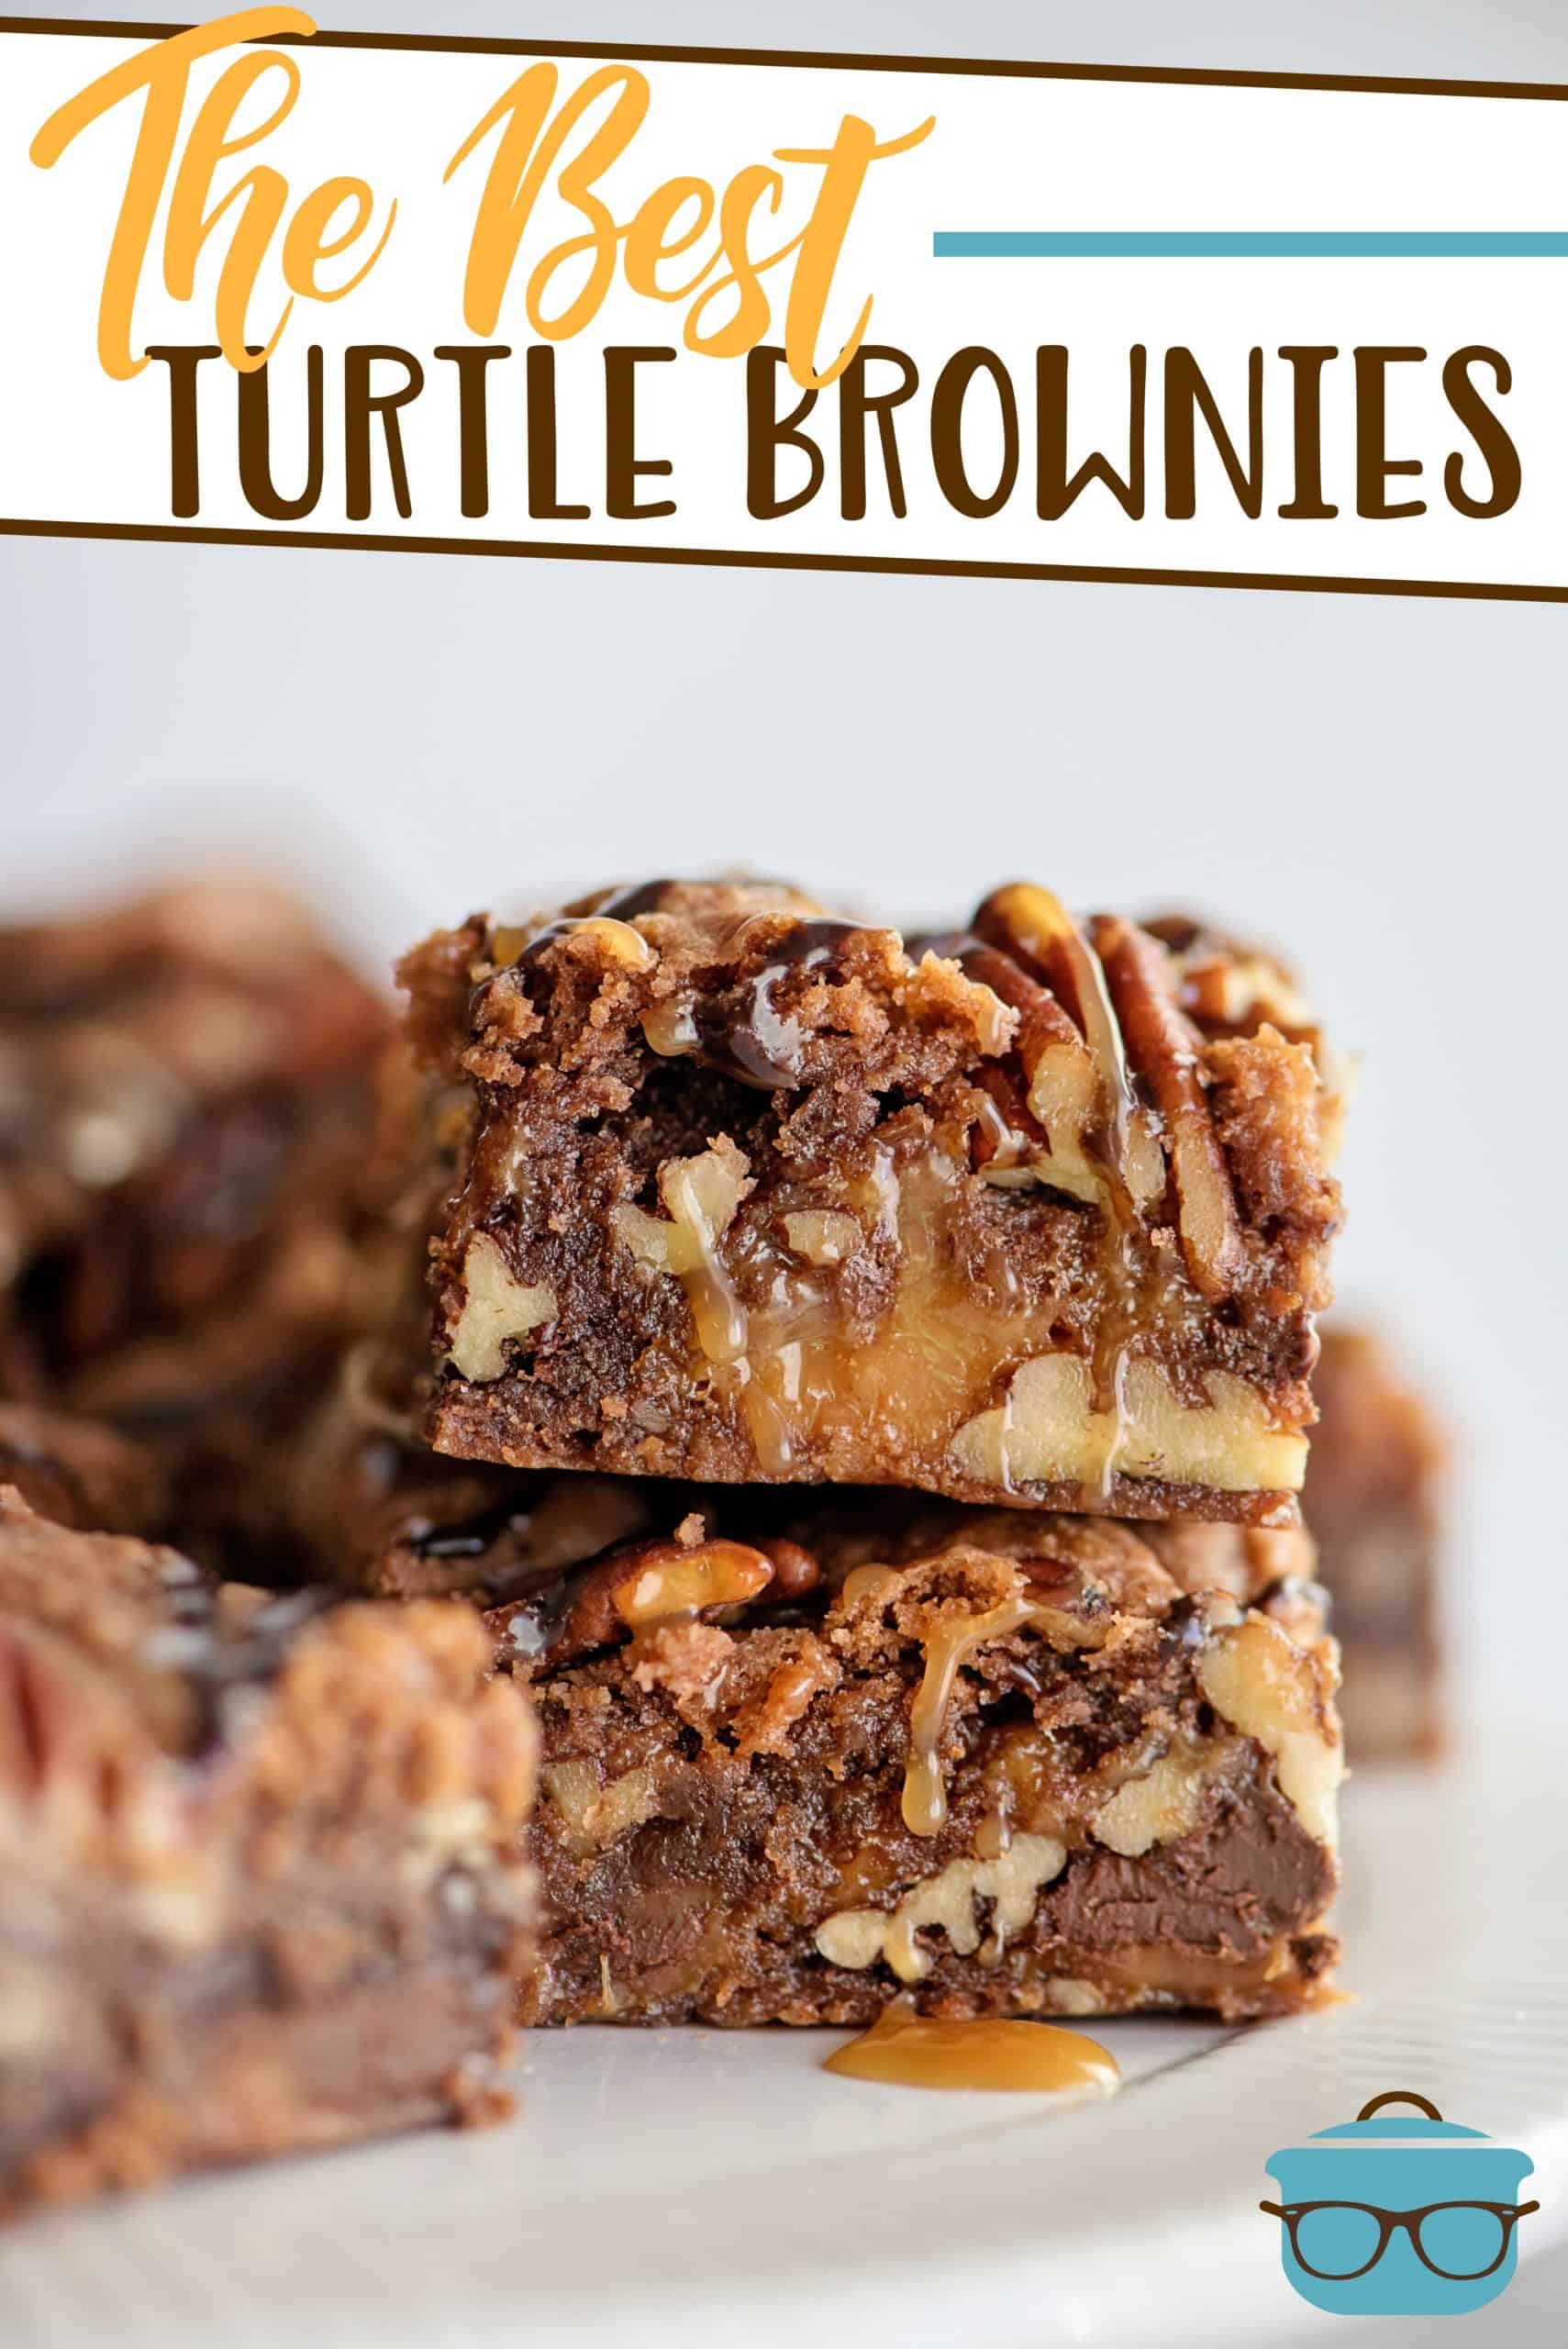 This recipe for Turtle Brownies are not only scrumptious, they are incredibly easy to make with delicious layers of chocolate and caramel!